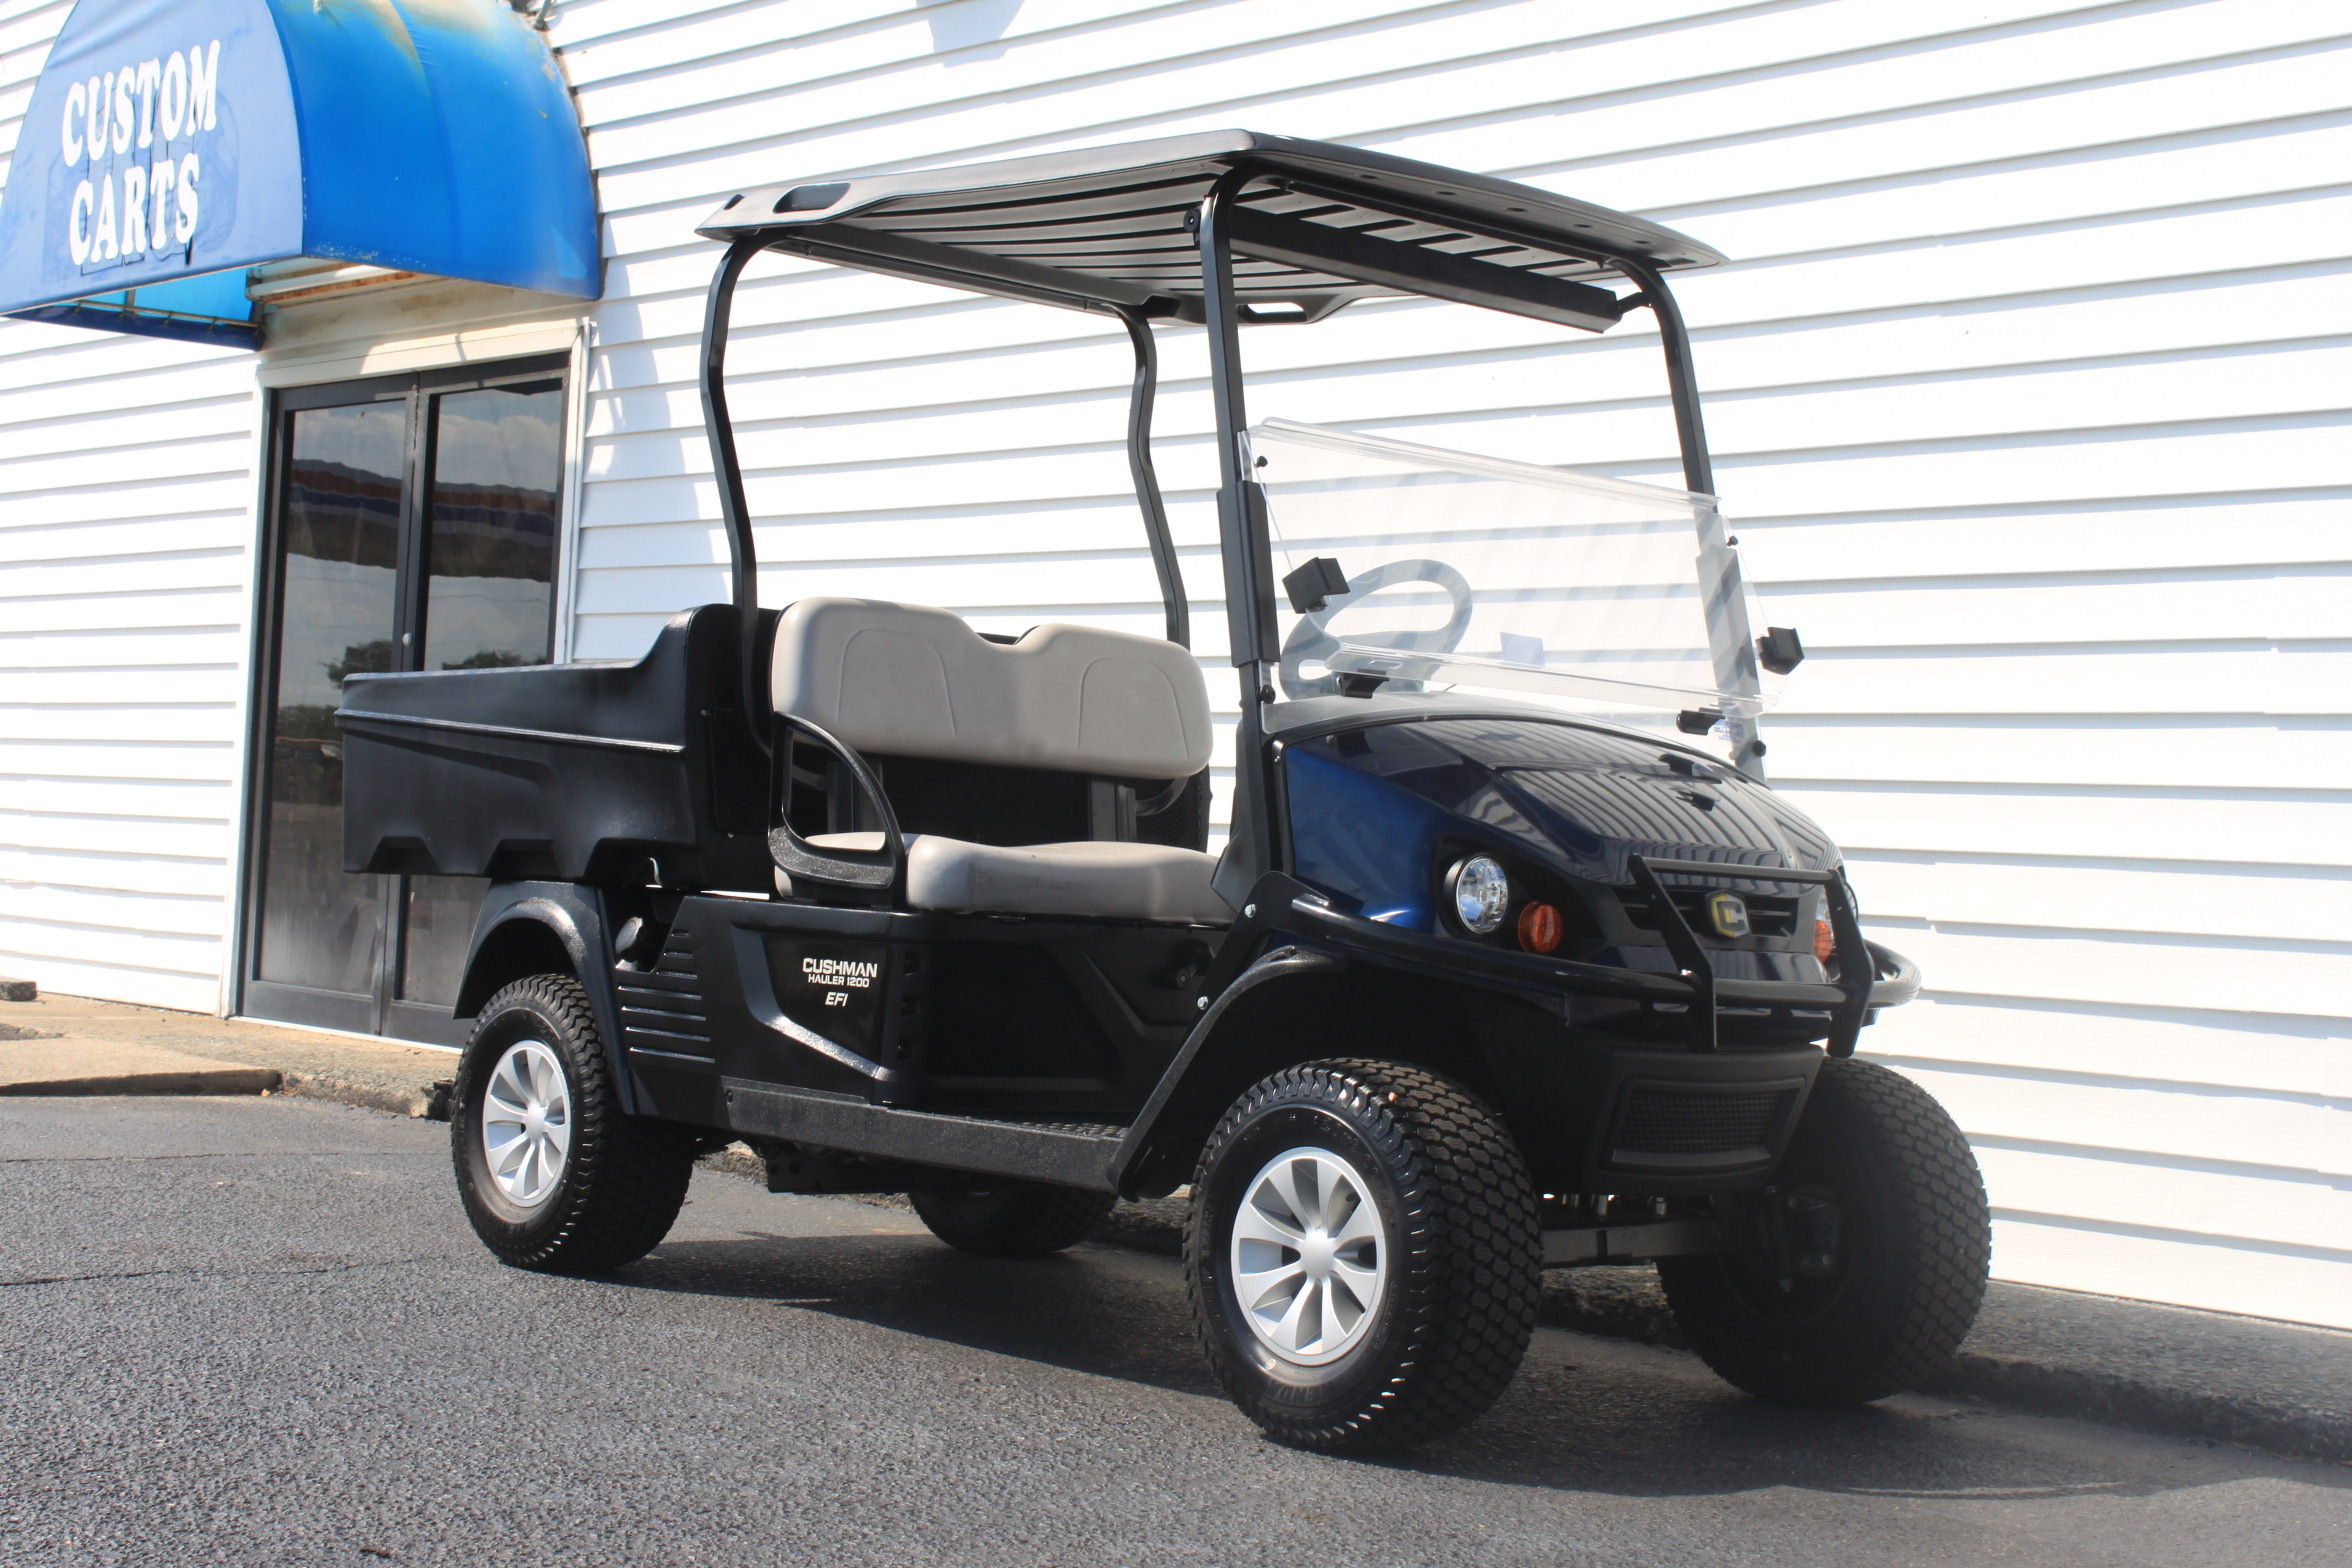 STOCK# 3431926, 2019 CUSHMAN HAULER 1200 EFI GAS CART